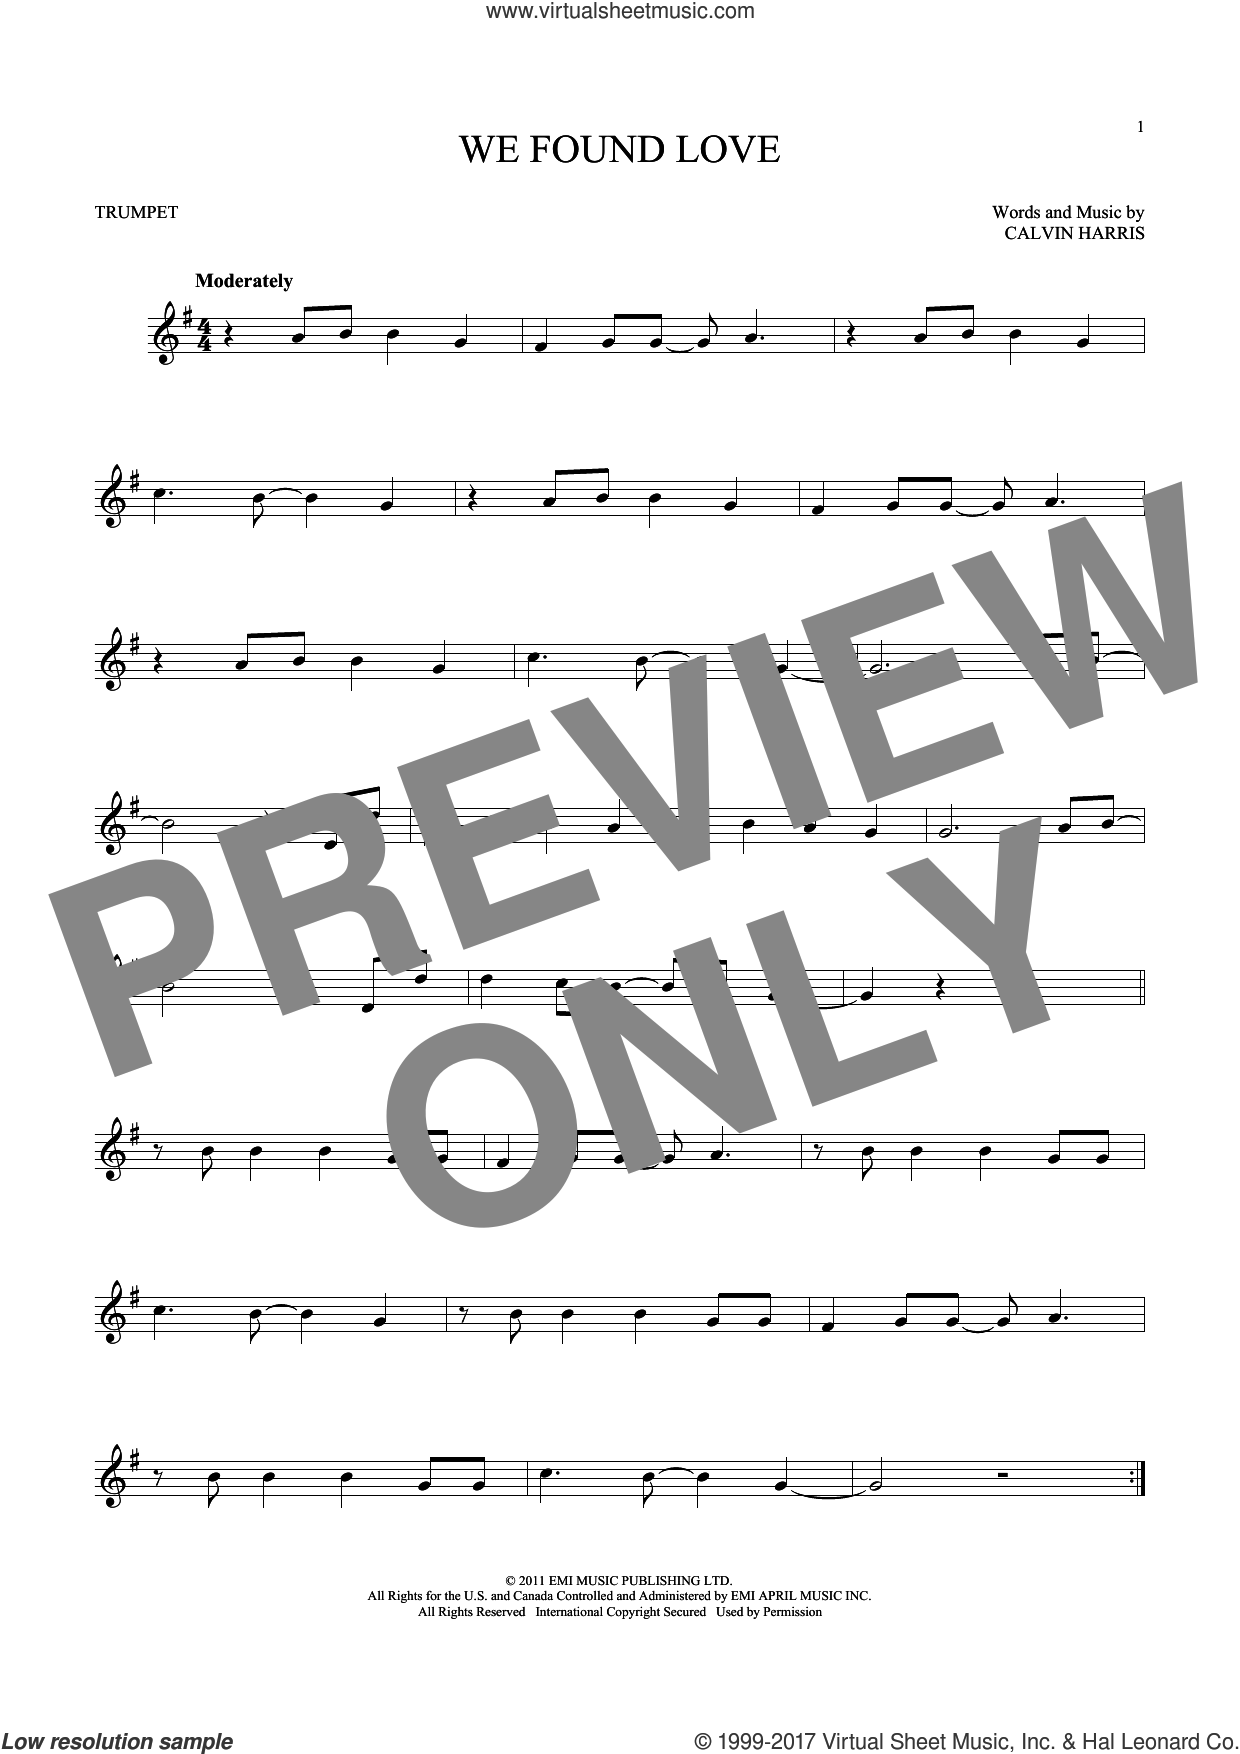 We Found Love sheet music for trumpet solo by Rihanna featuring Calvin Harris and Calvin Harris, wedding score, intermediate skill level